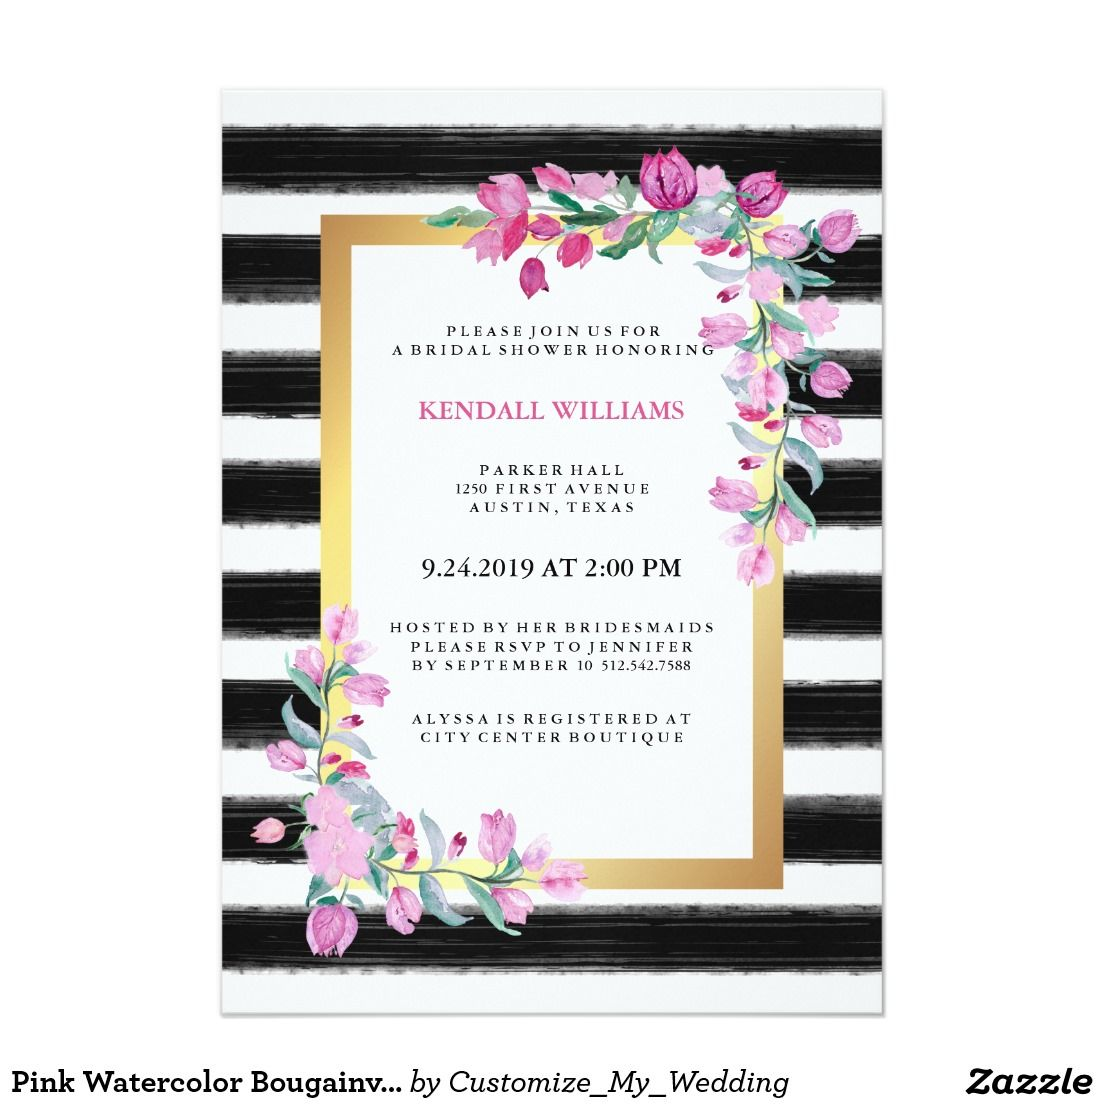 Pink Watercolor Bougainvillea with Black and White Stripes Bridal Shower Invitation